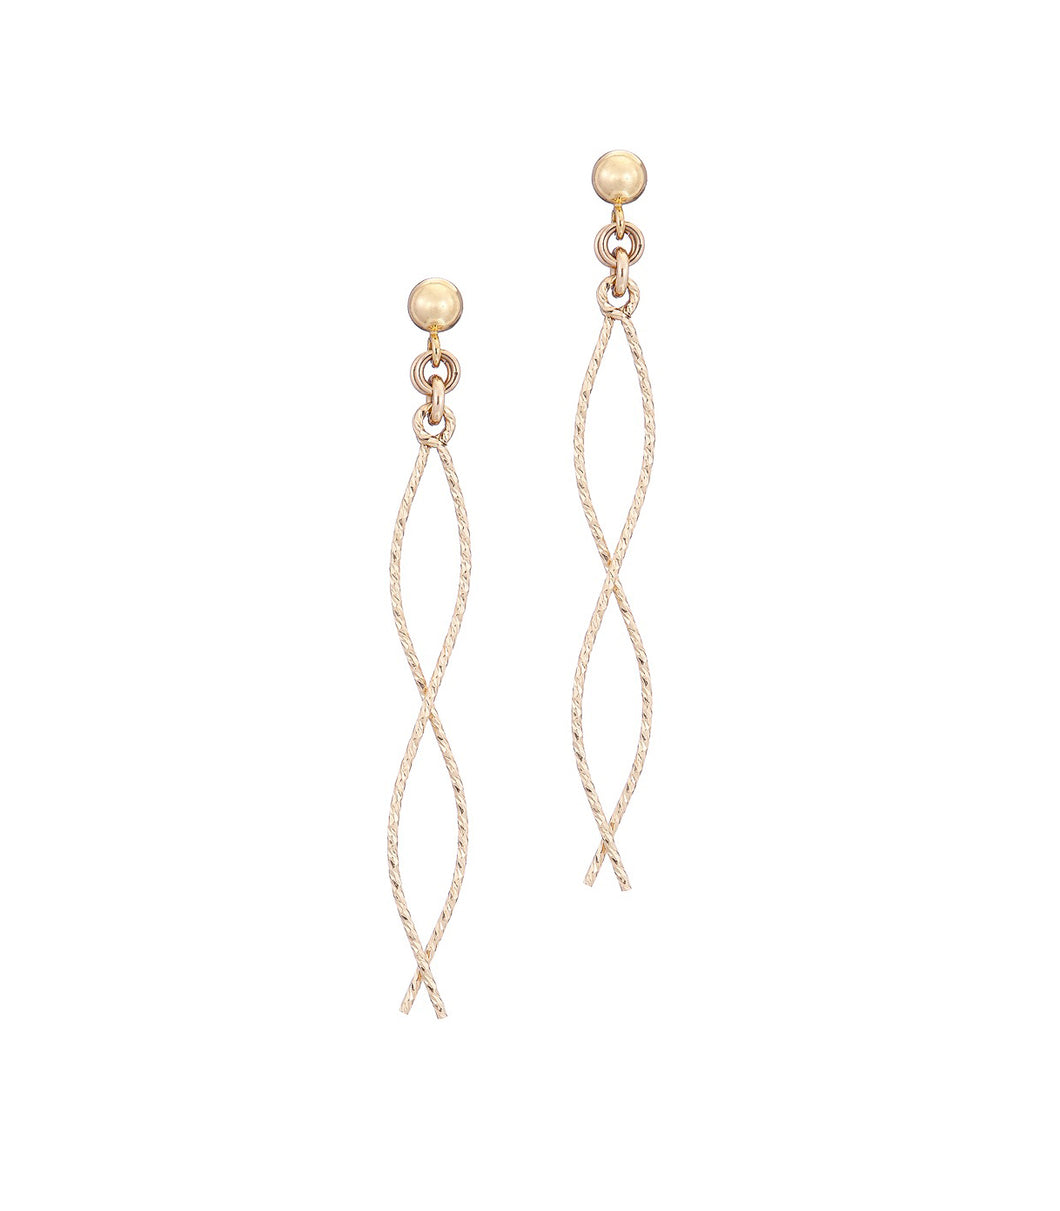 14kt GoldFill Mini Diverge Earrings